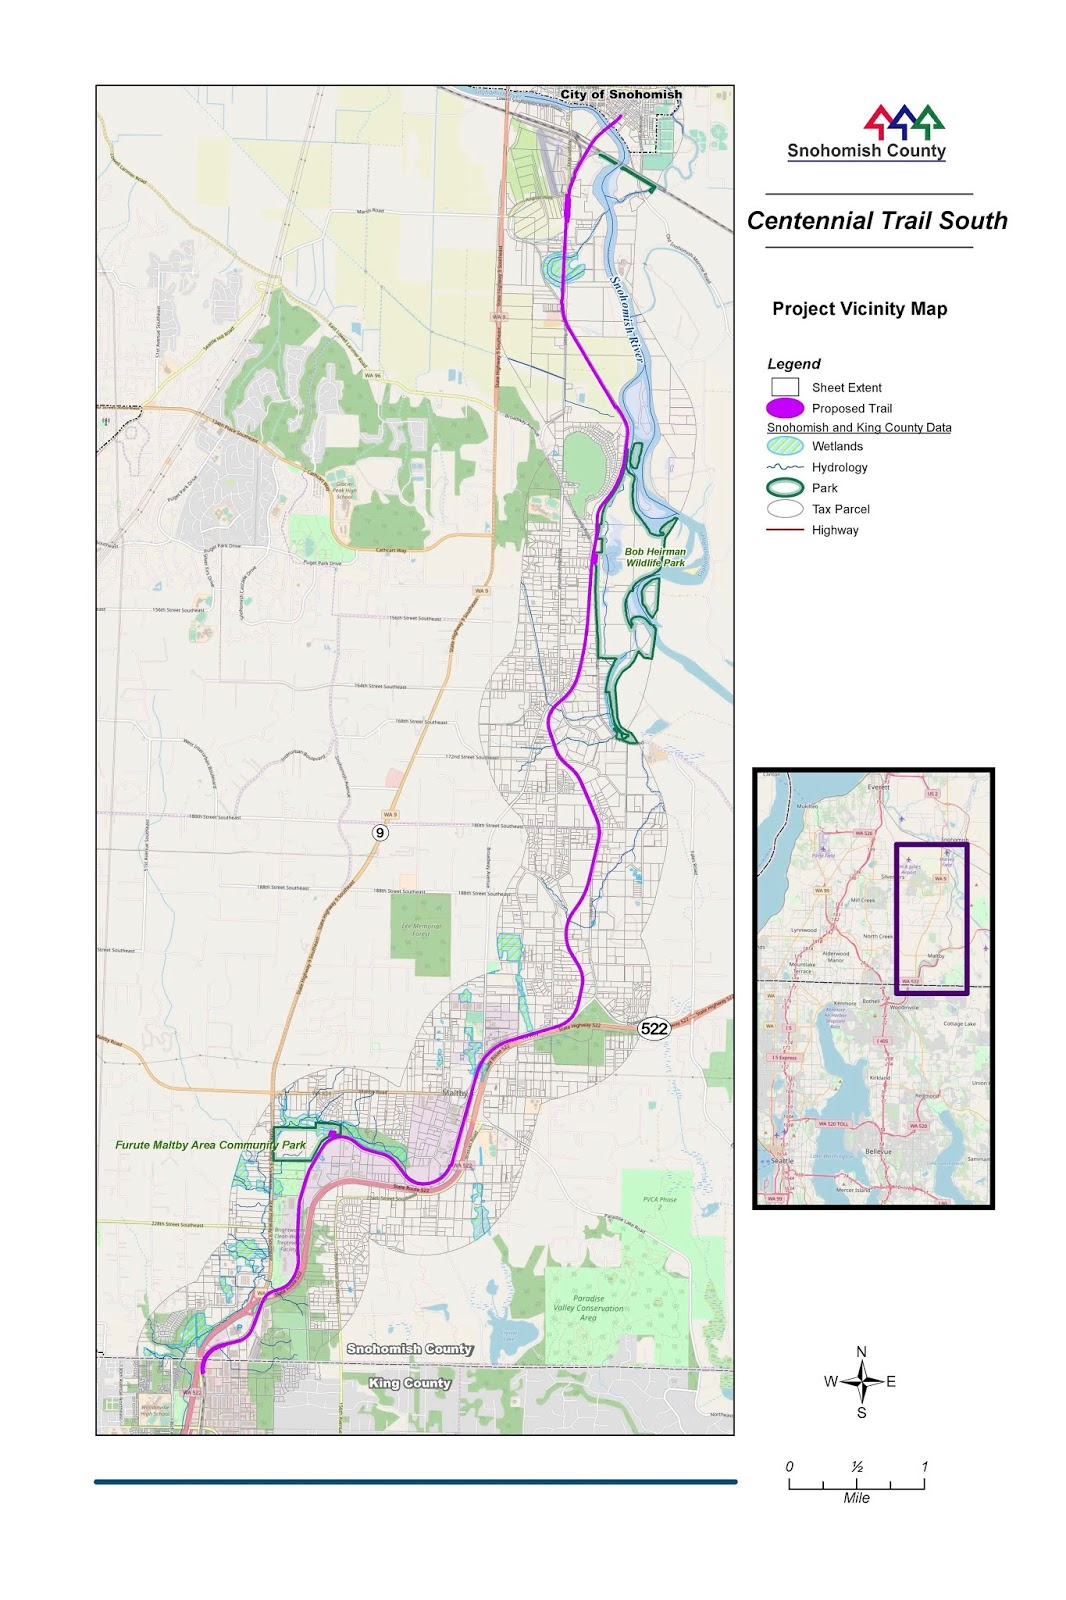 Trail Coalition of Snohomish County on